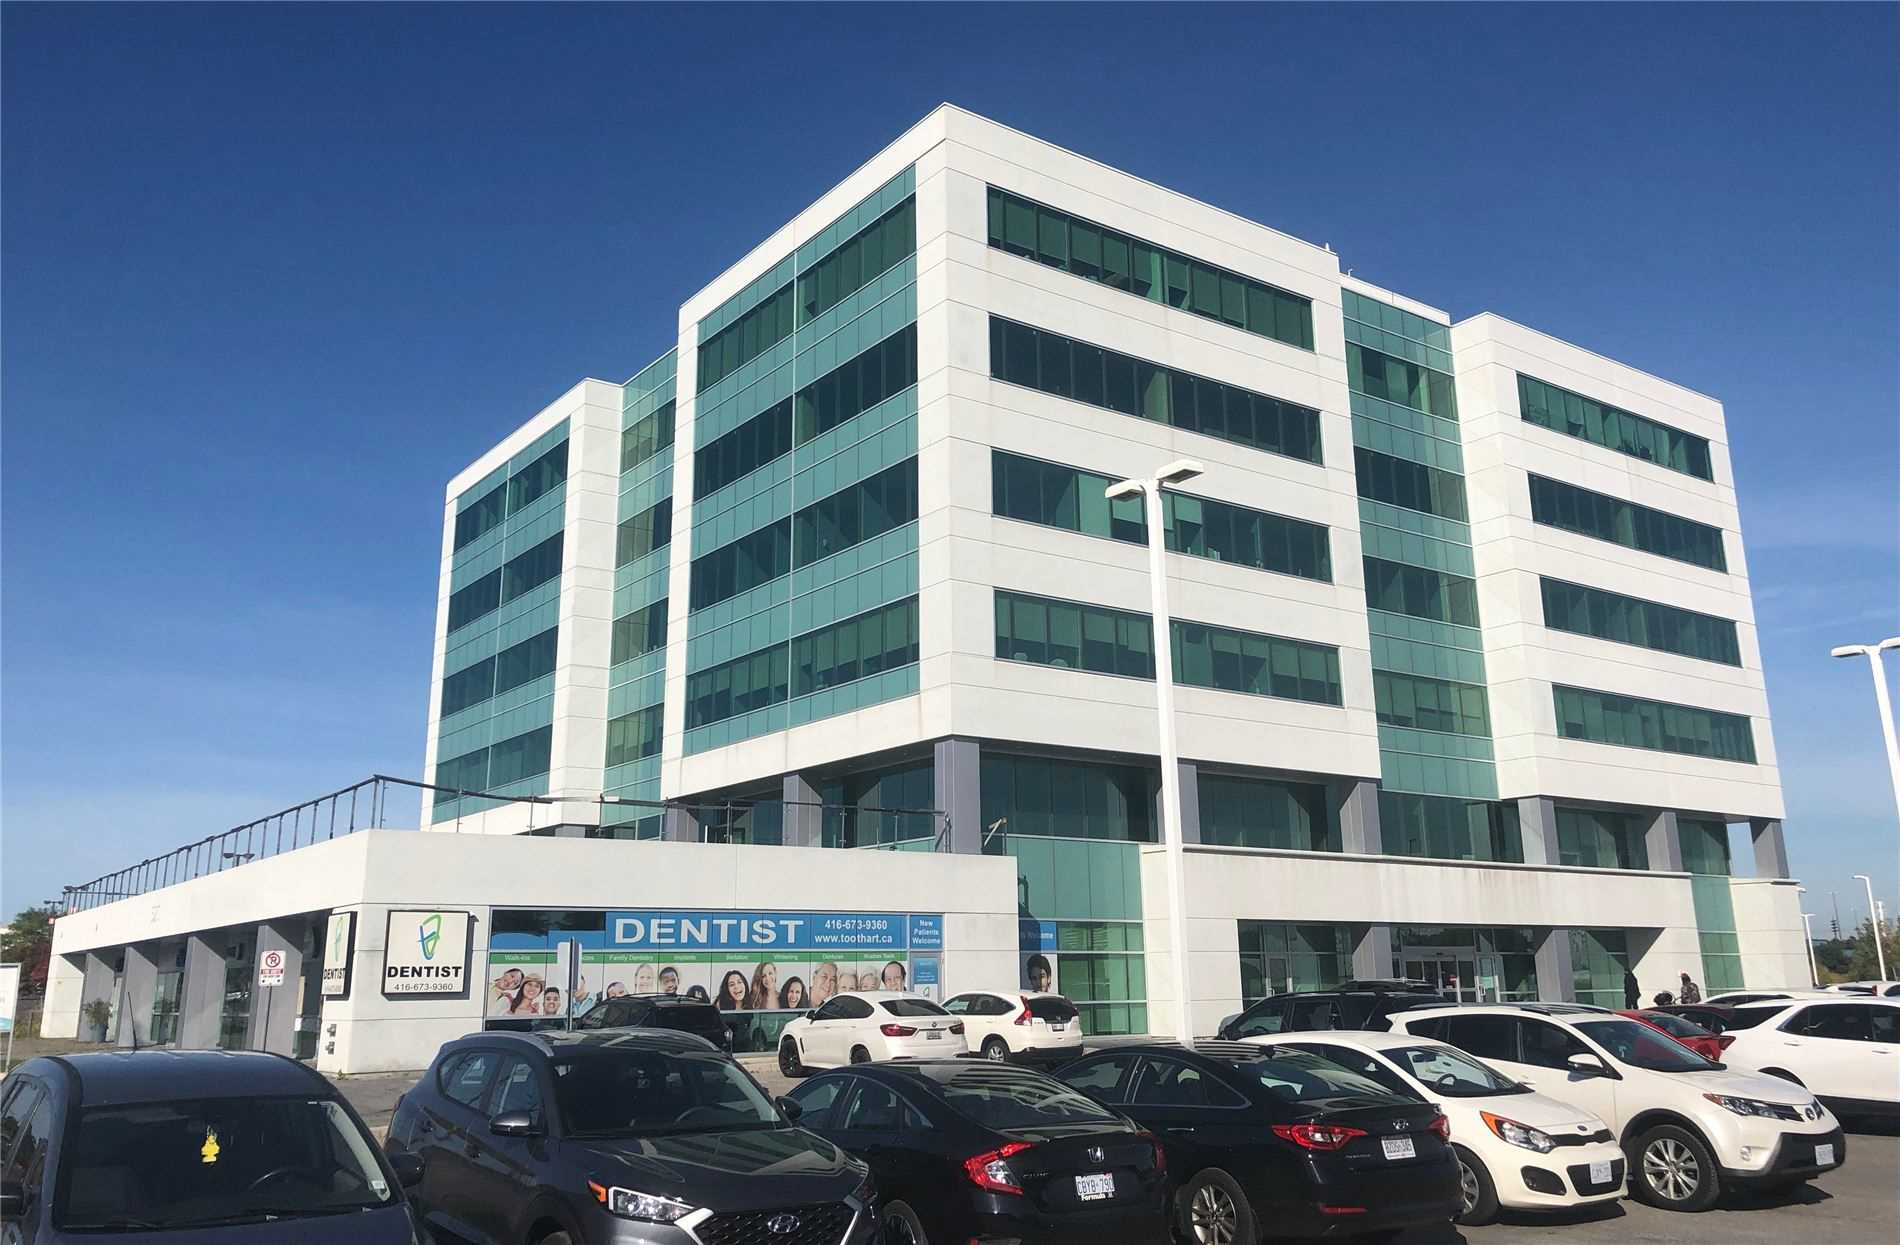 520 Ellesmere Rd 302, Wexford-Maryvale, Toronto, Ontario M1R4E6, ,Office,For Lease,Ellesmere,E4646305